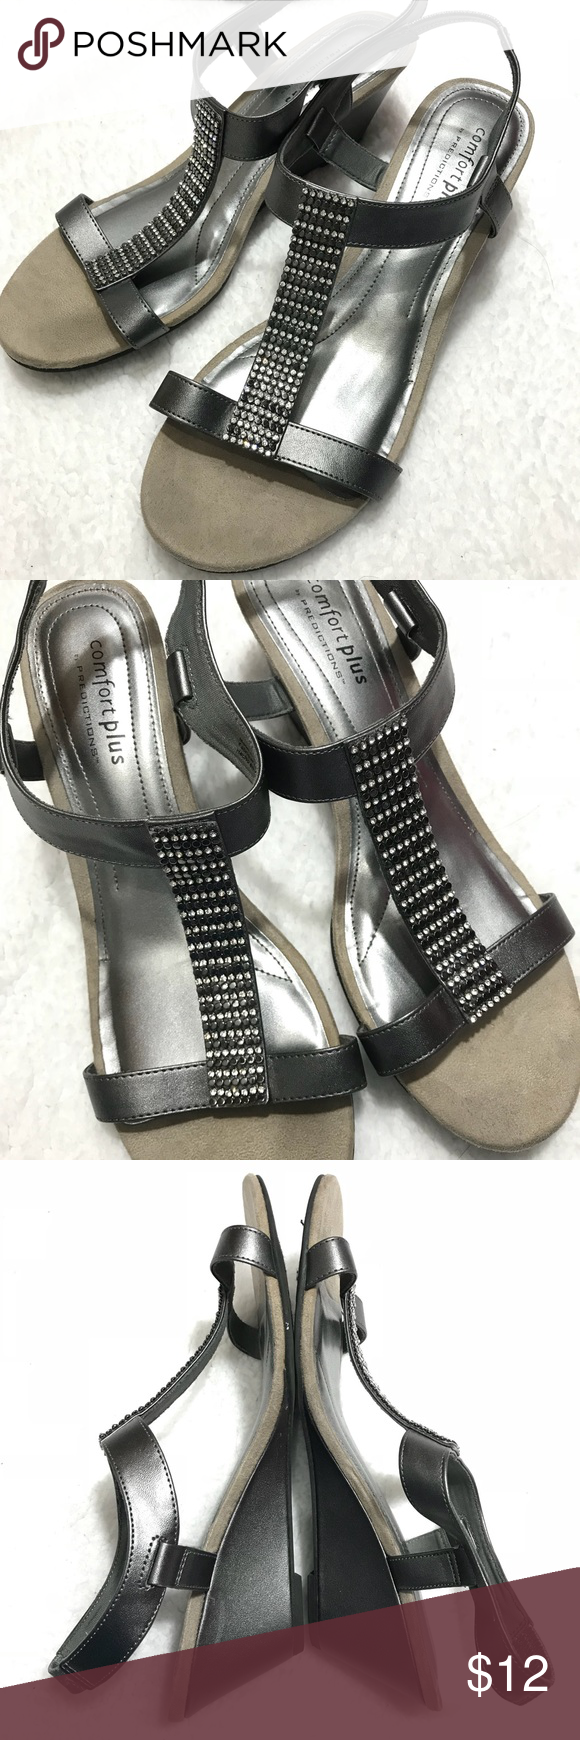 Comfort Plus By Predictions Wedge Sandals Size 11w Wedge Sandals Sandals Heels